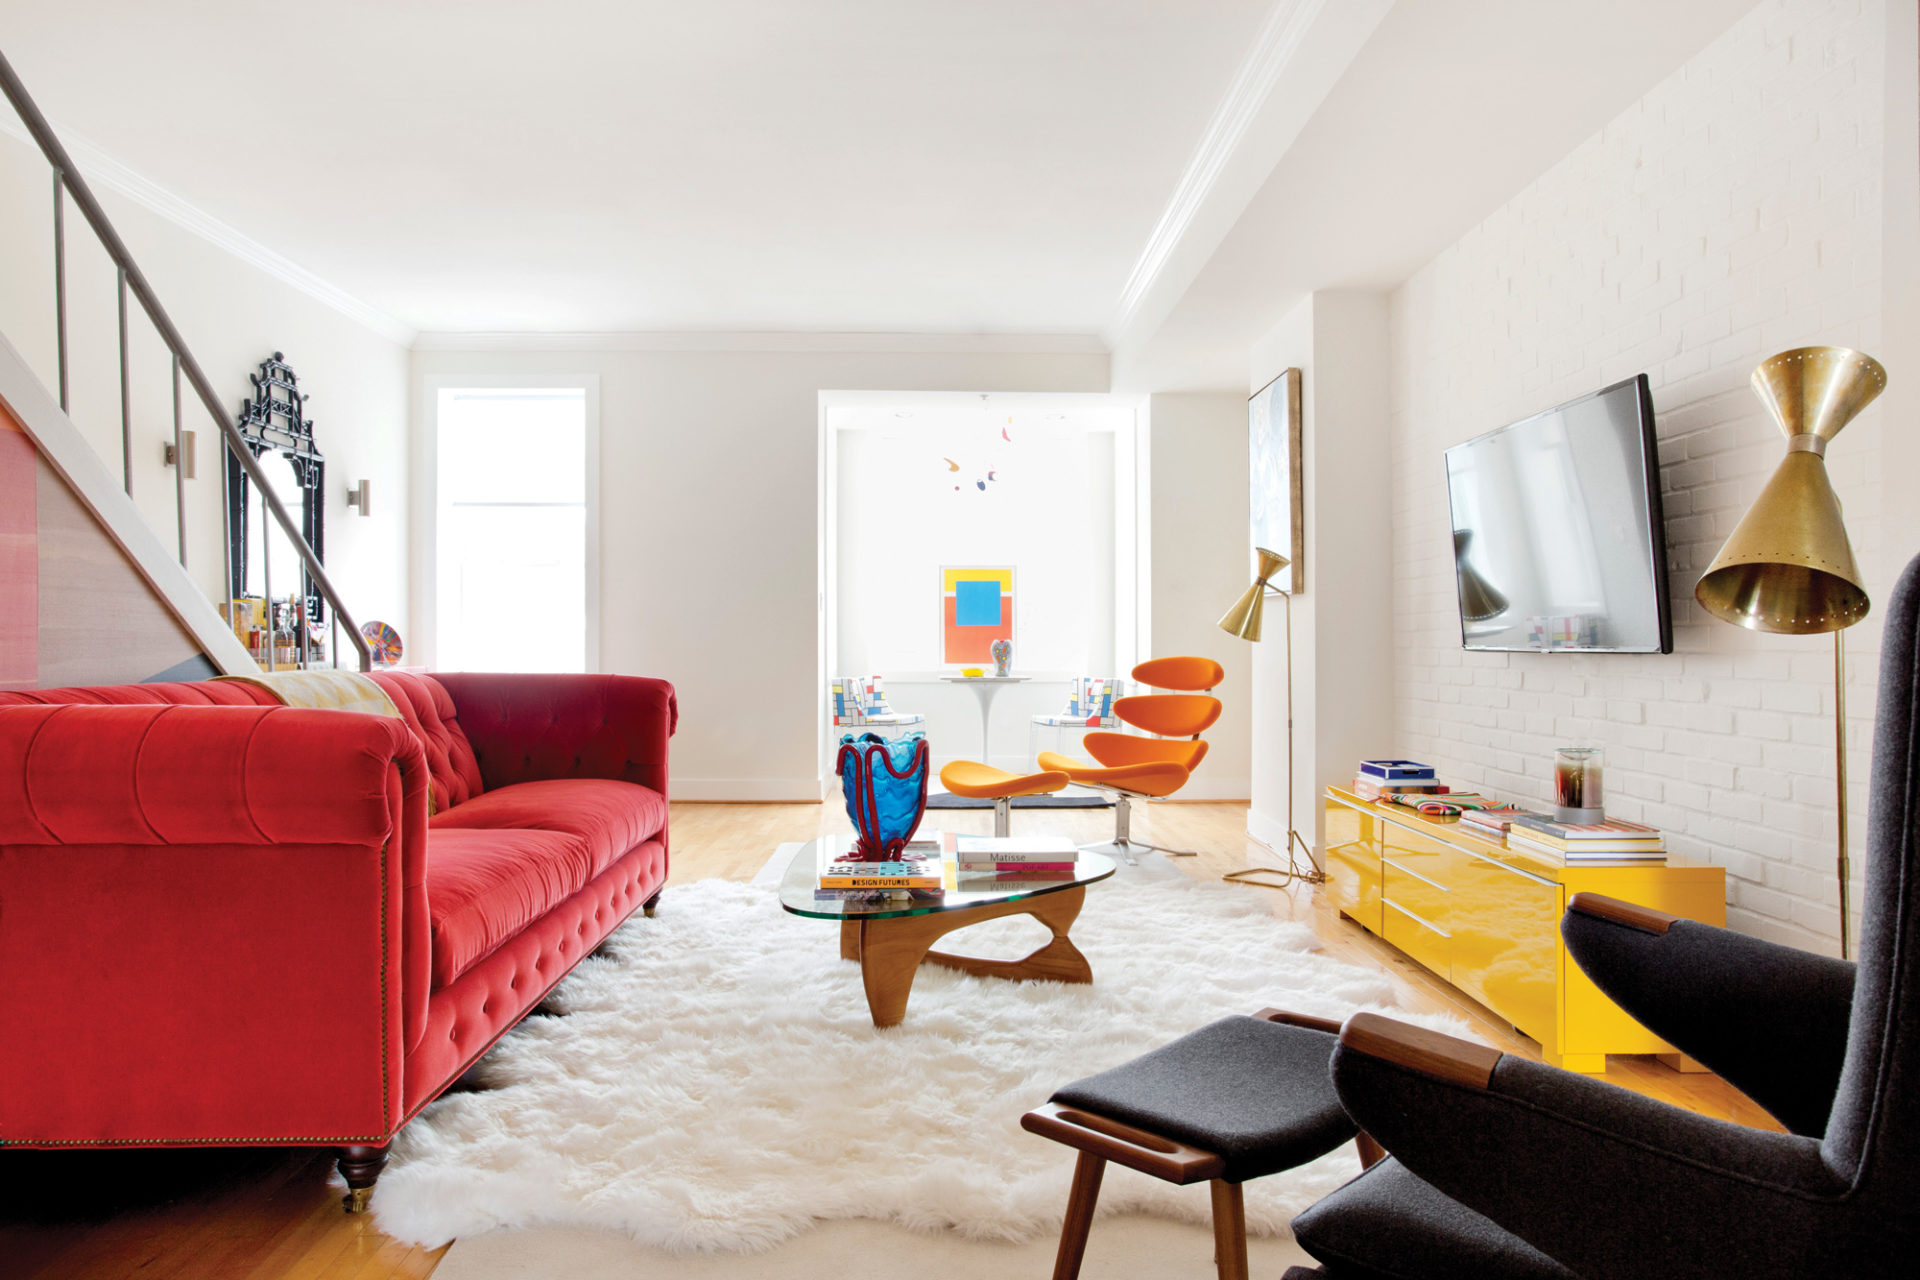 Colorful and Contemporary in D.C. | Interiors Magazine